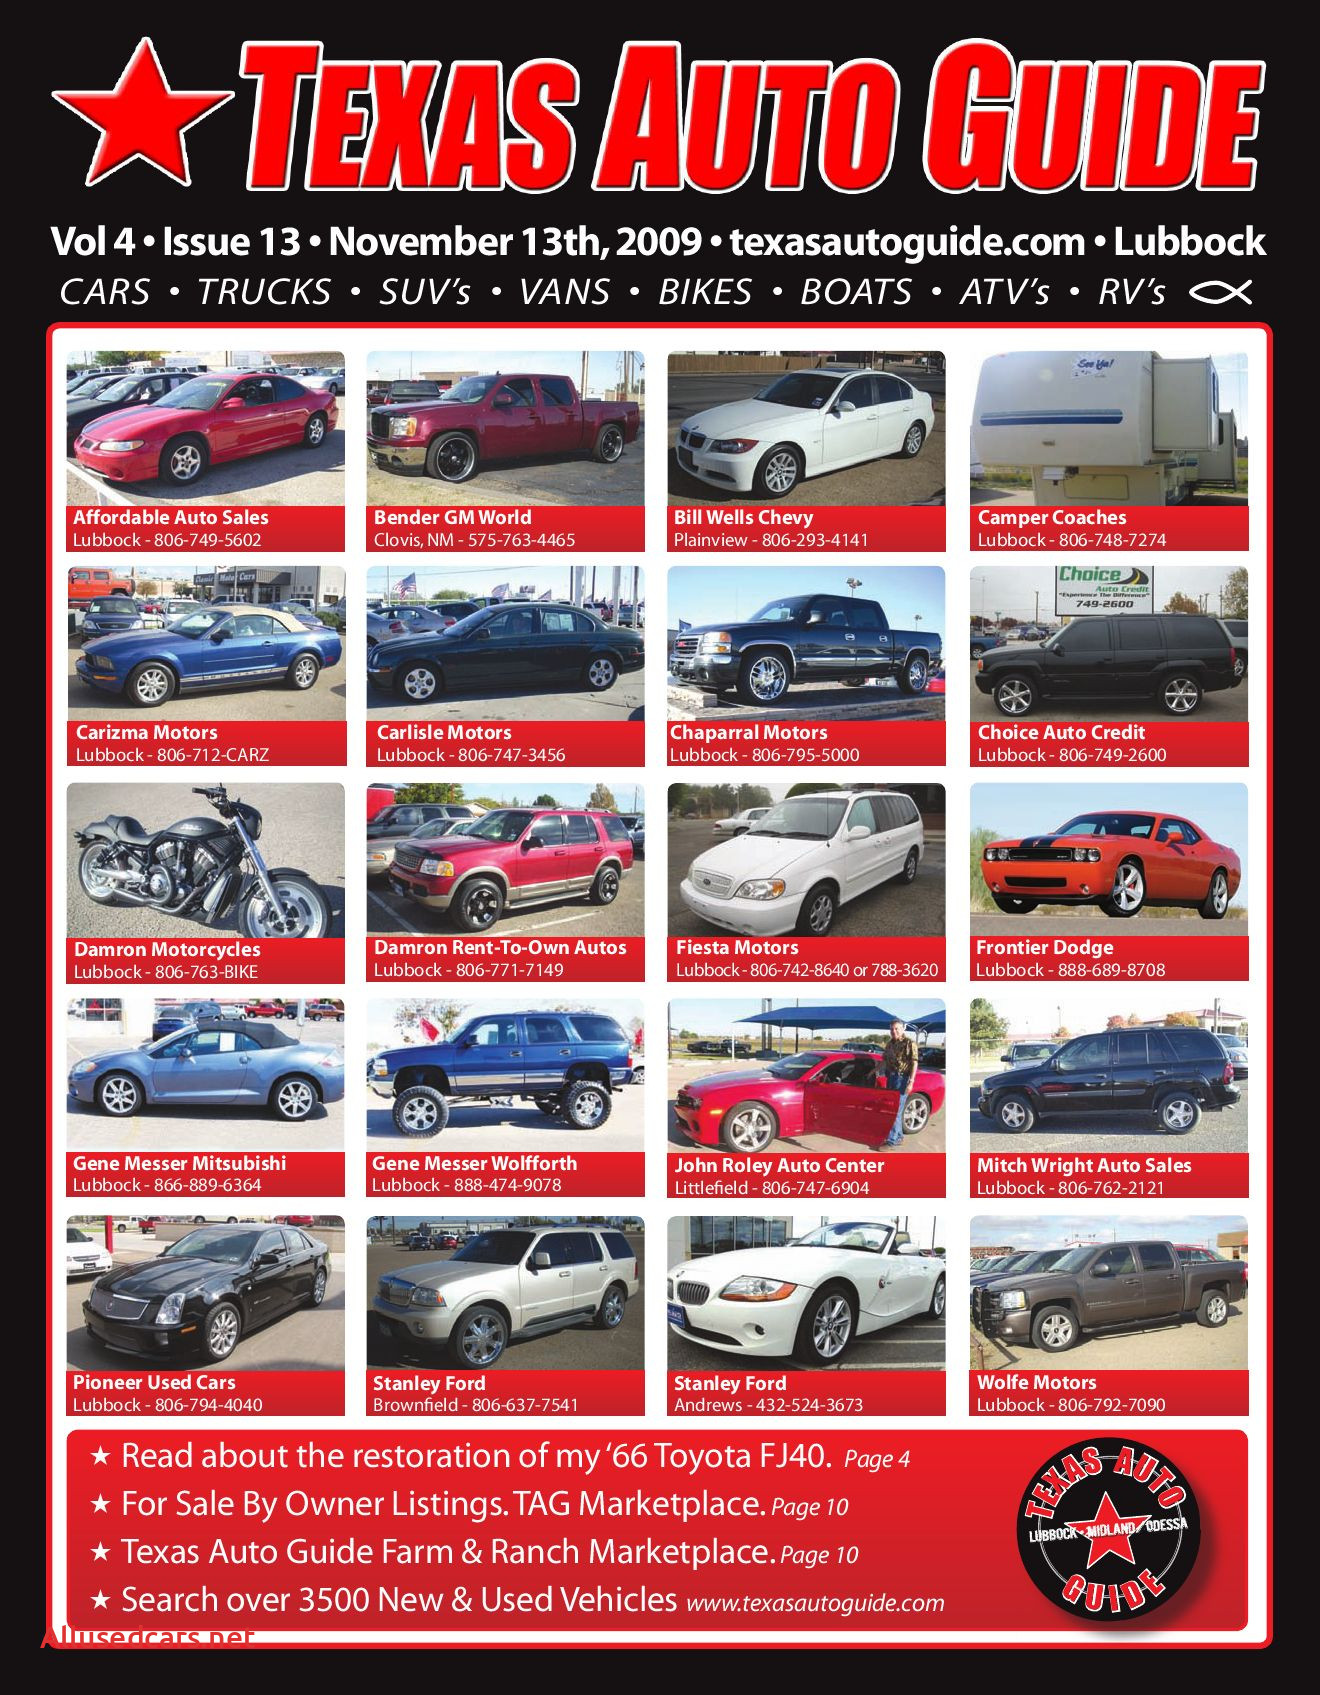 Affordable Auto Sales New November issue Of Texas Auto Guide Lubbock by Texas Auto